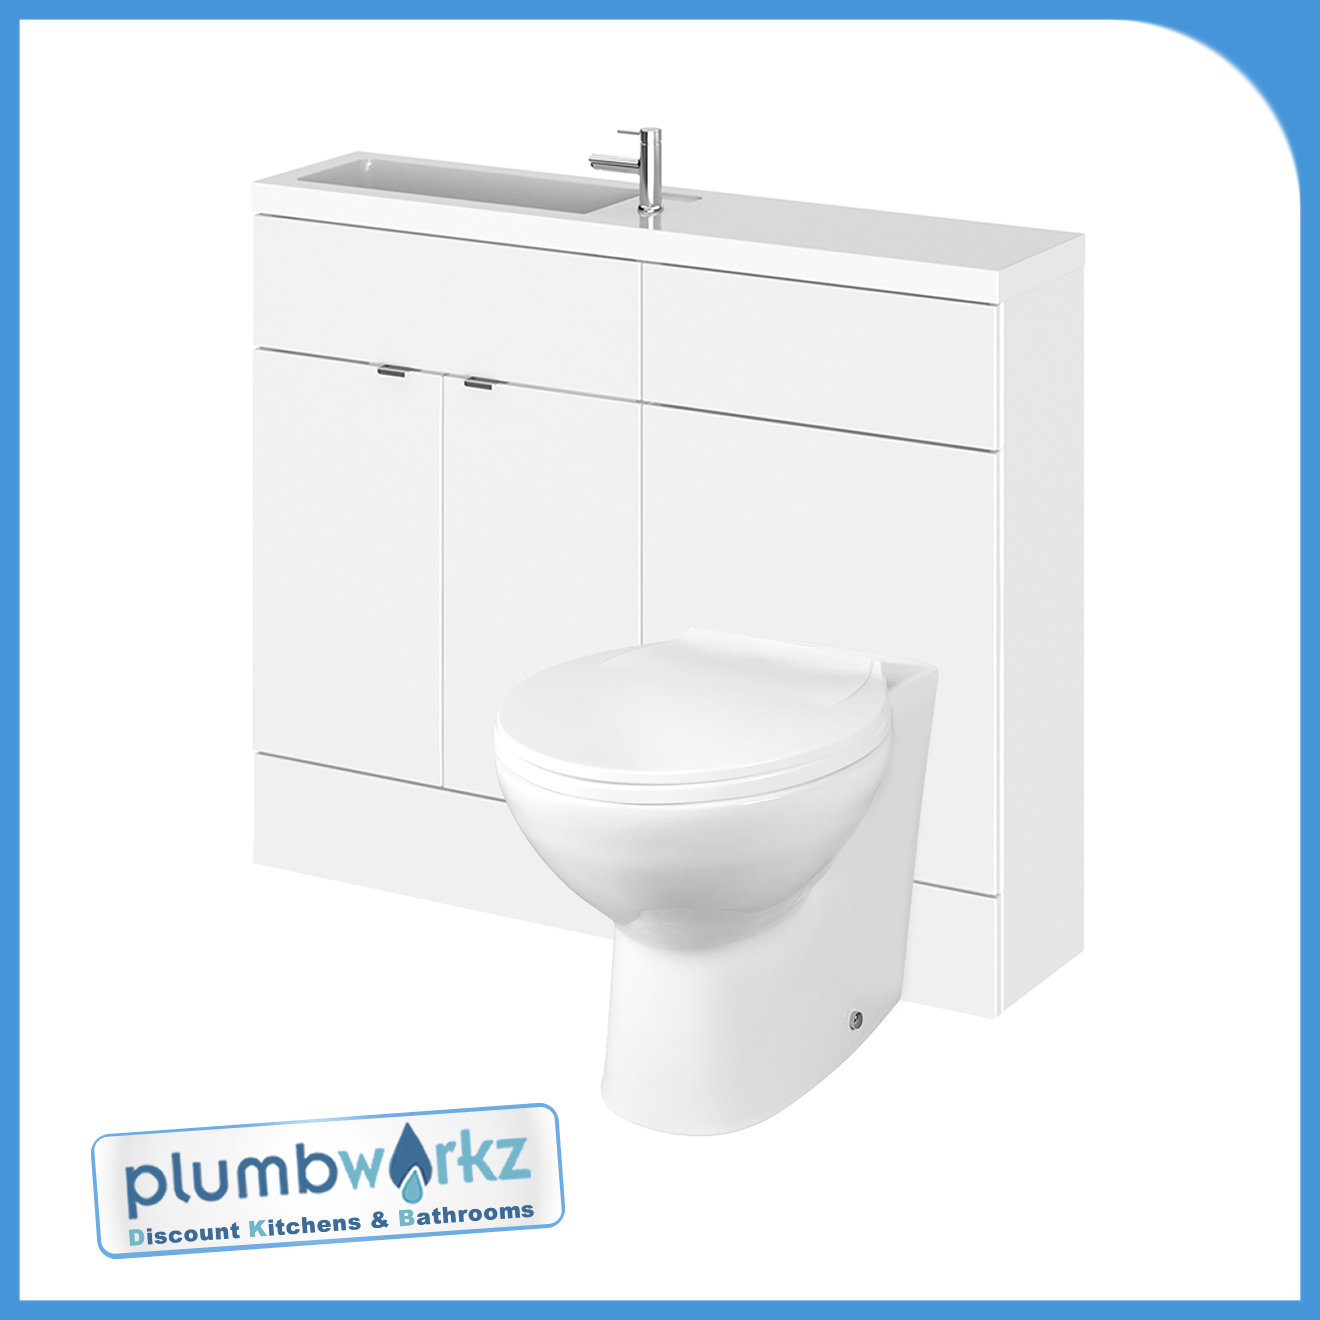 Designer Combi Bathroom Vanity Unit Wc Unit With Basin Sink Toilet Ebay